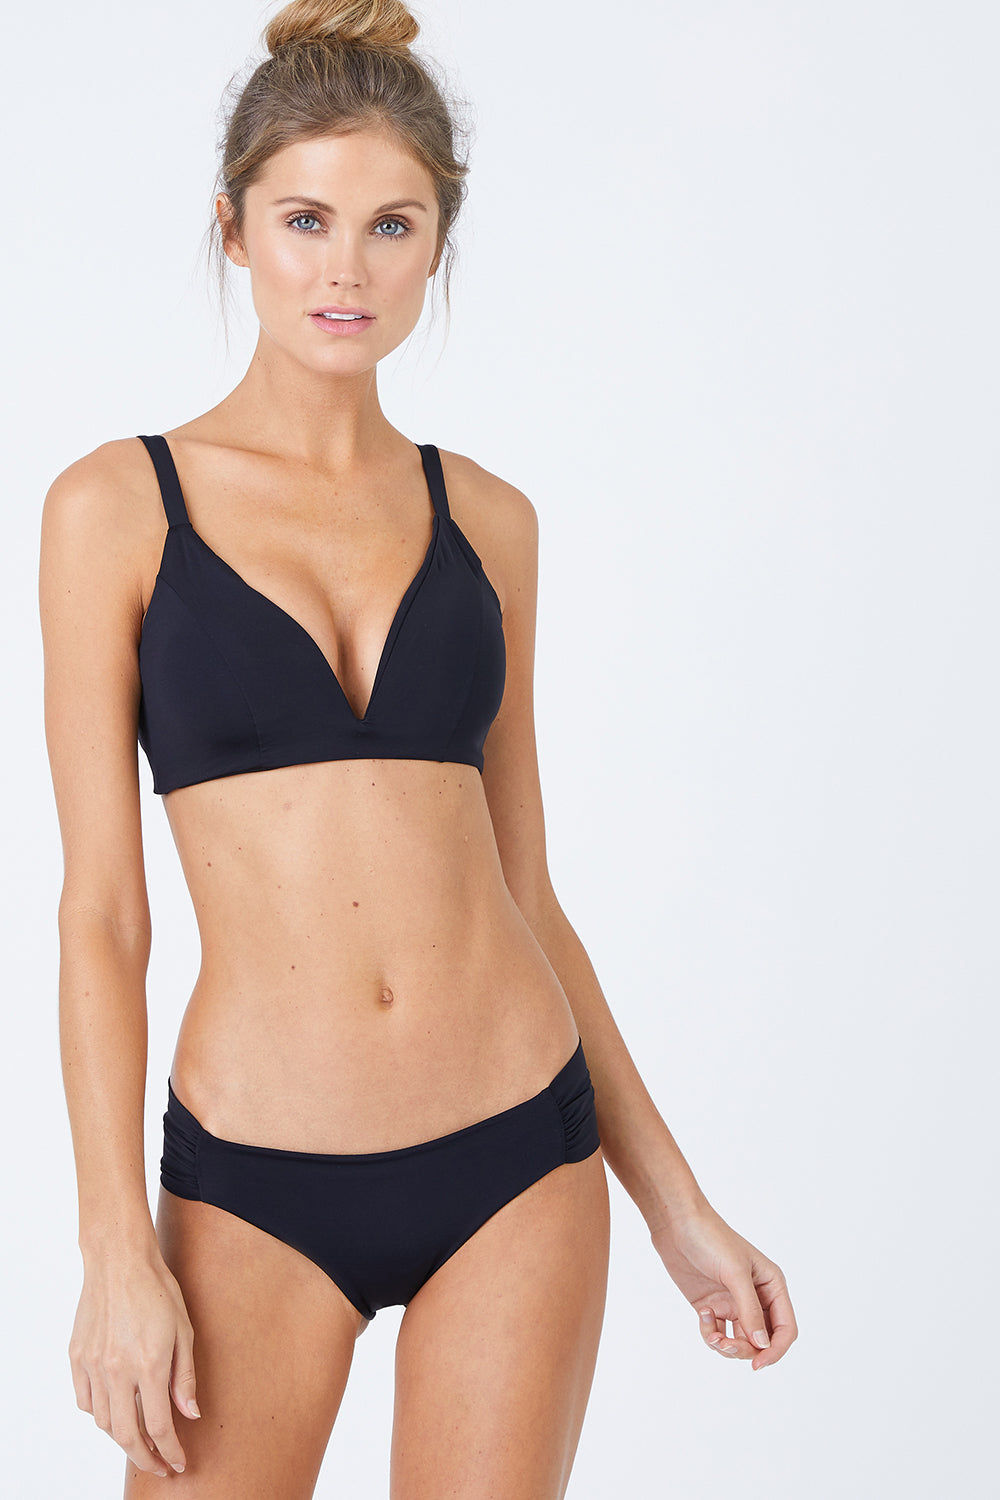 MALAI Ruched Side Bikini Bottom - Black Bikini Bottom | Black| Malai Ruched Side Bikini Bottom - Black. Features:  Low rise hipster Ruched sides Cheeky to moderate coverage Fully lined Front View